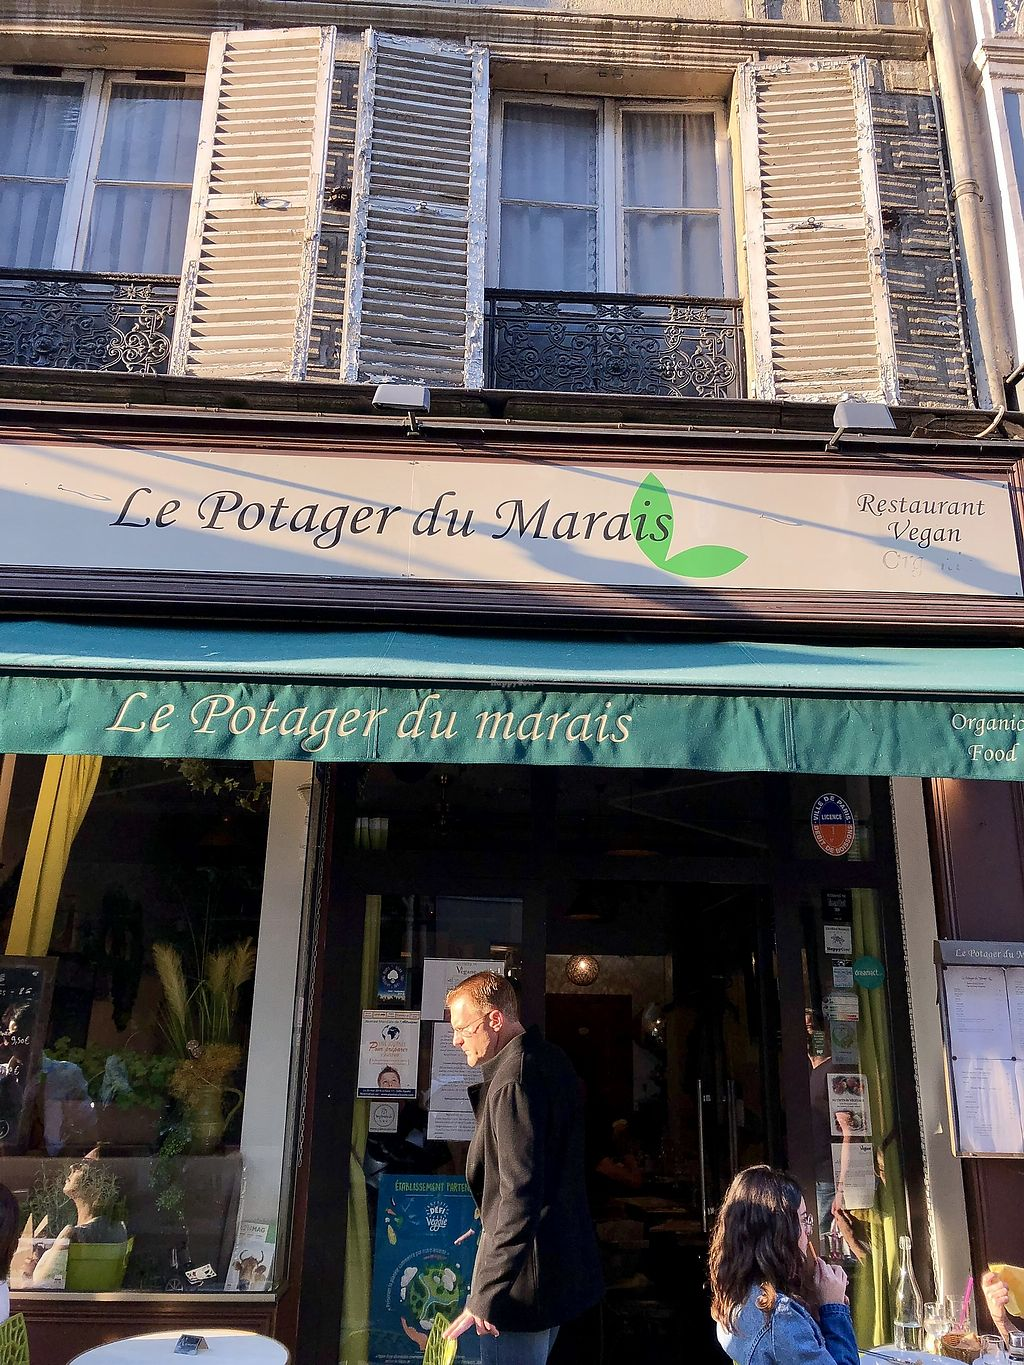 """Photo of Le Potager du Marais  by <a href=""""/members/profile/vegbenzboy"""">vegbenzboy</a> <br/>Front of restaurant  <br/> May 20, 2018  - <a href='/contact/abuse/image/4106/402678'>Report</a>"""